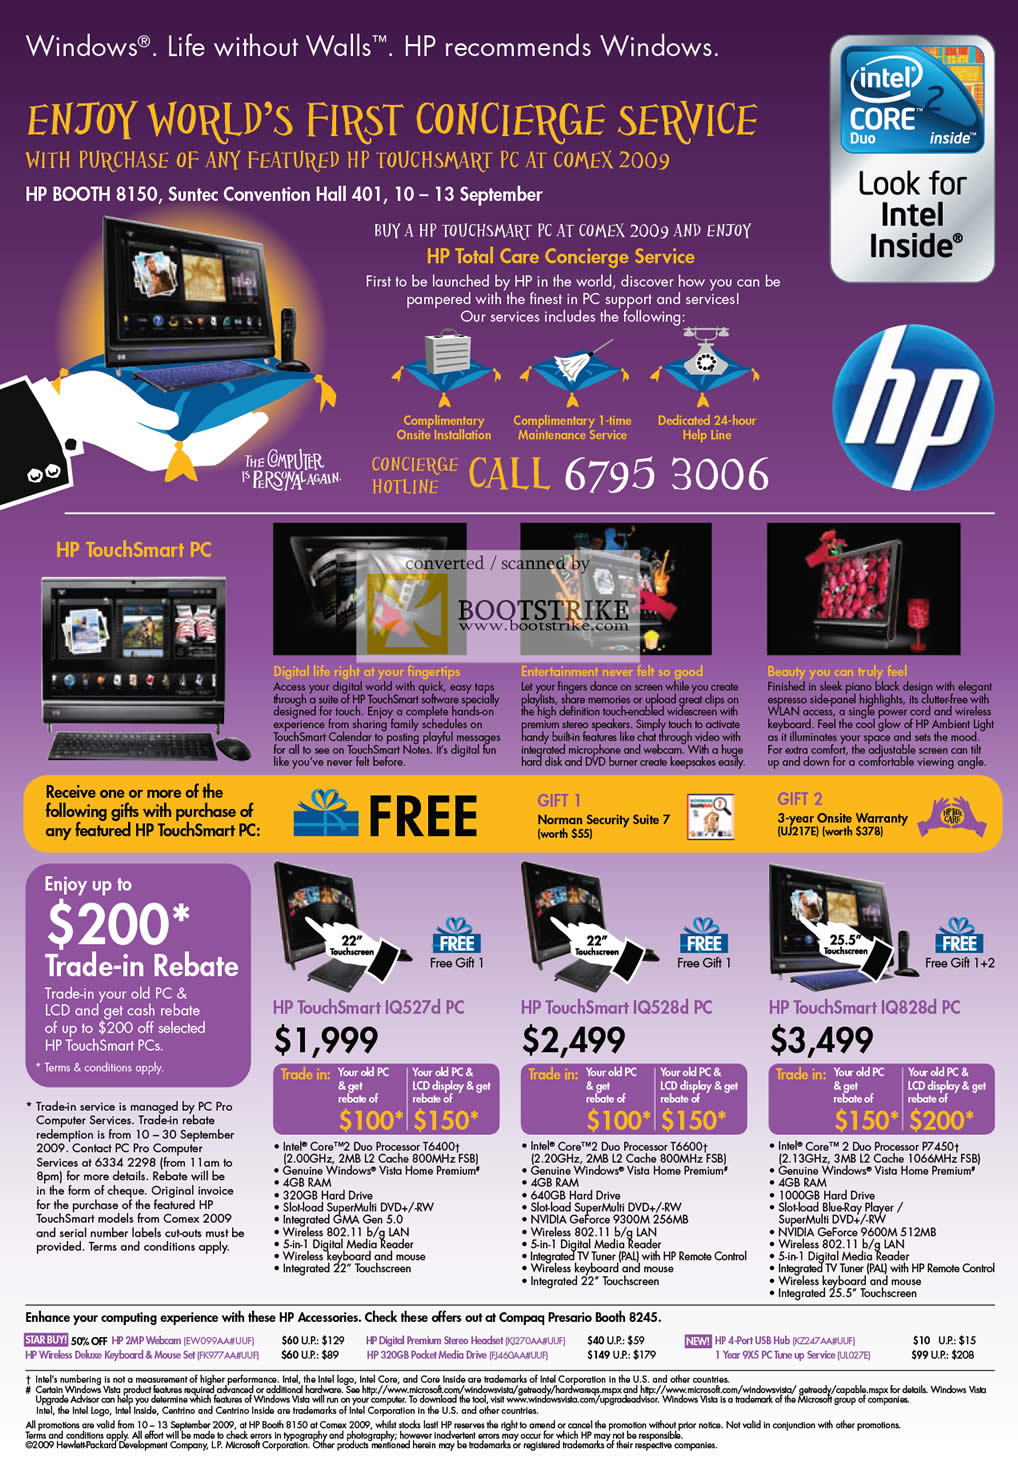 Comex 2009 price list image brochure of HP Concierge TouchSmart PC IQ527d IQ528d IQ828d